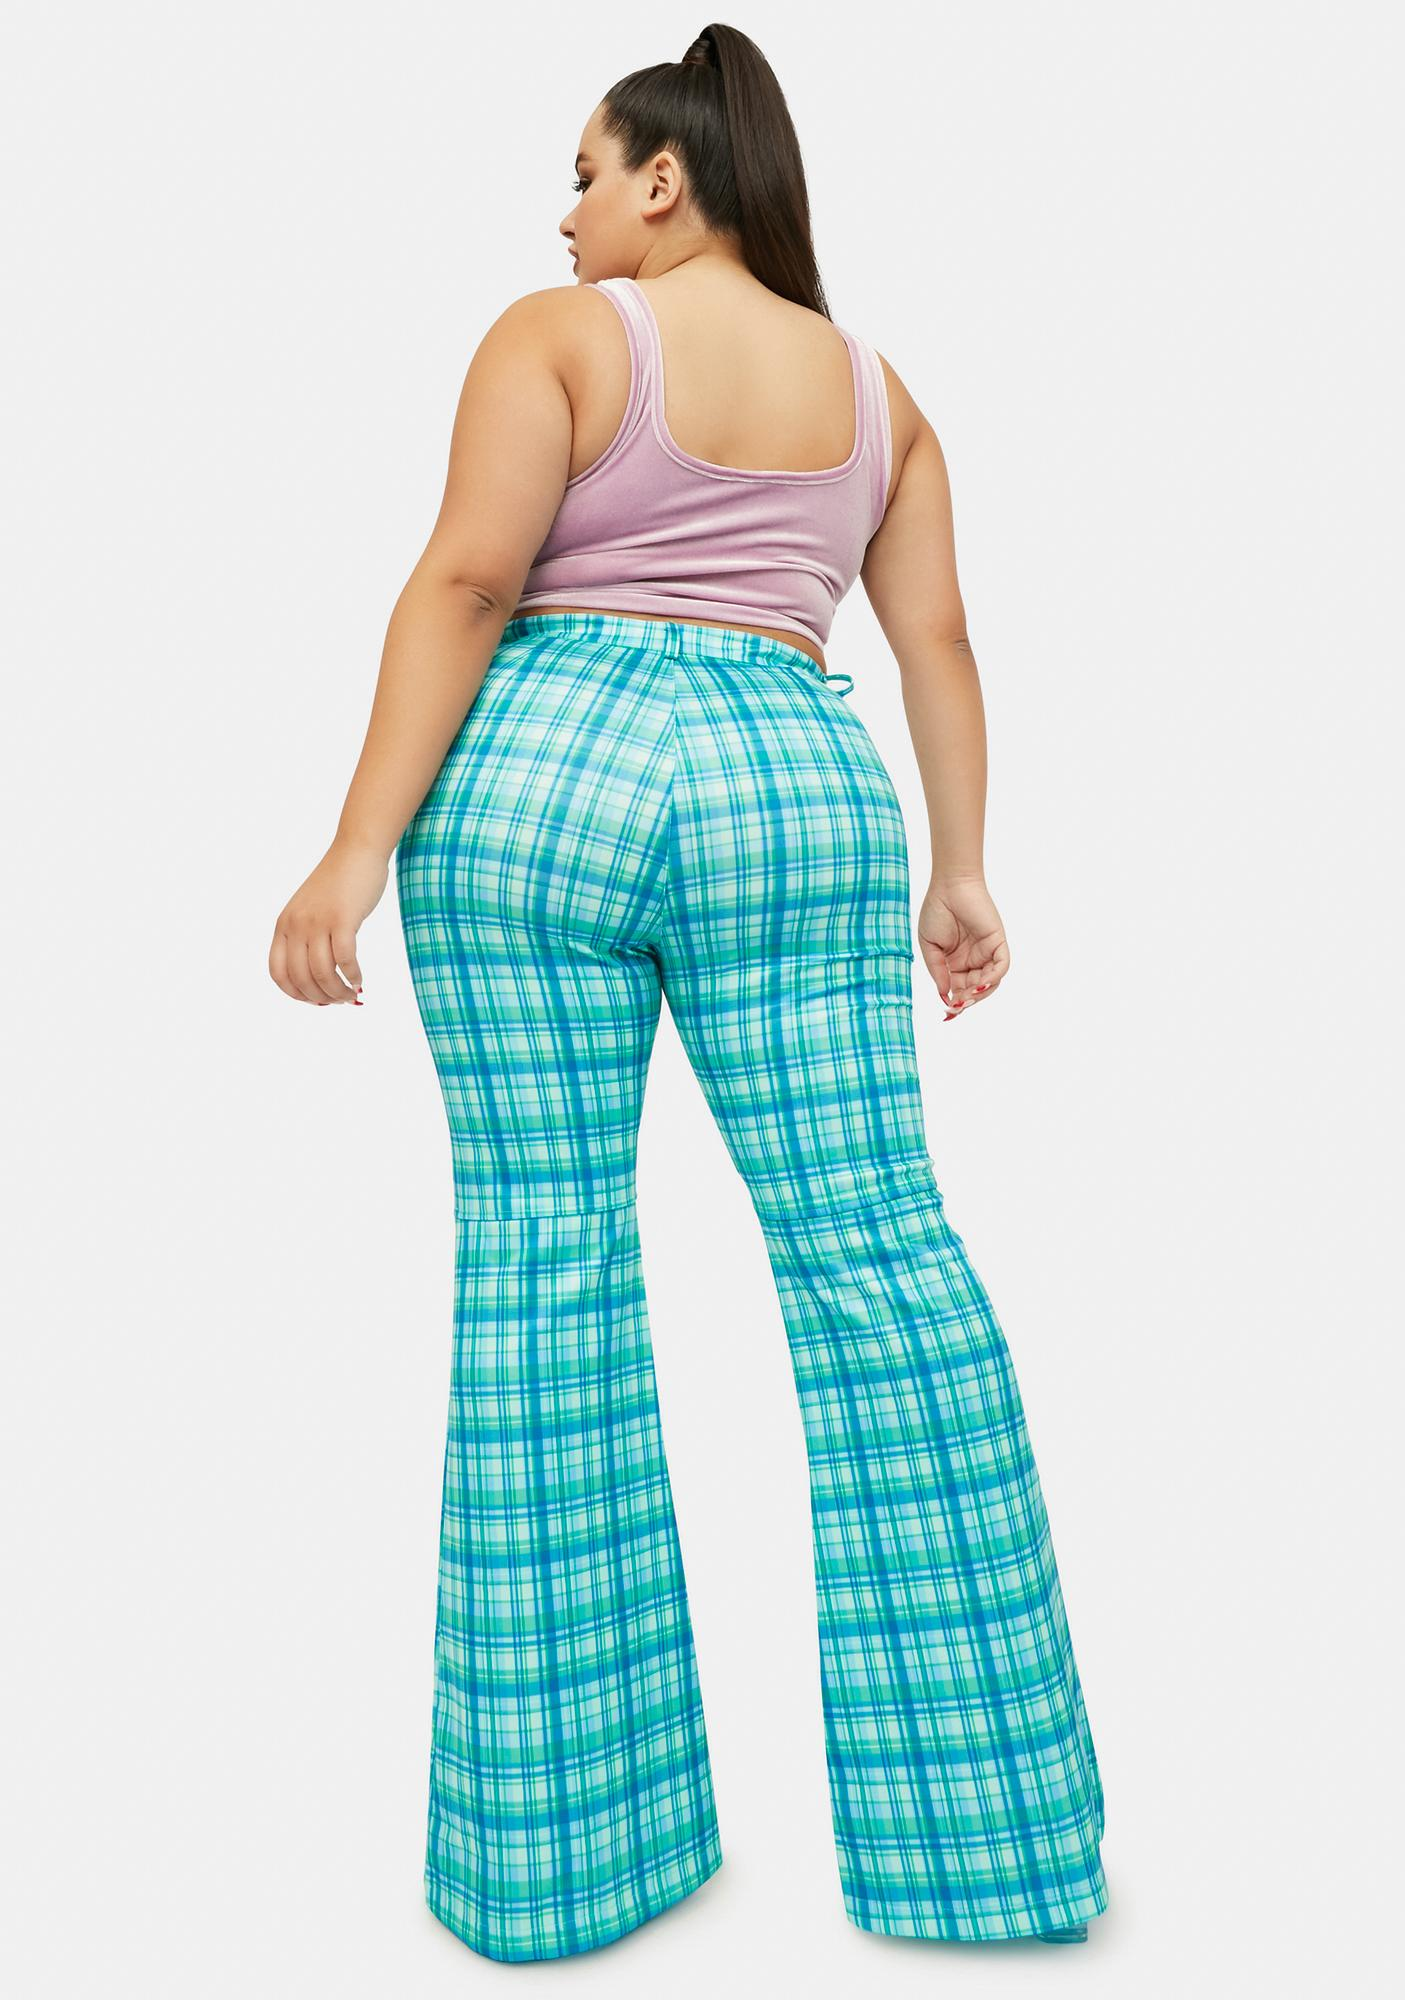 Her Wild Fusion Plaid Flared Pants